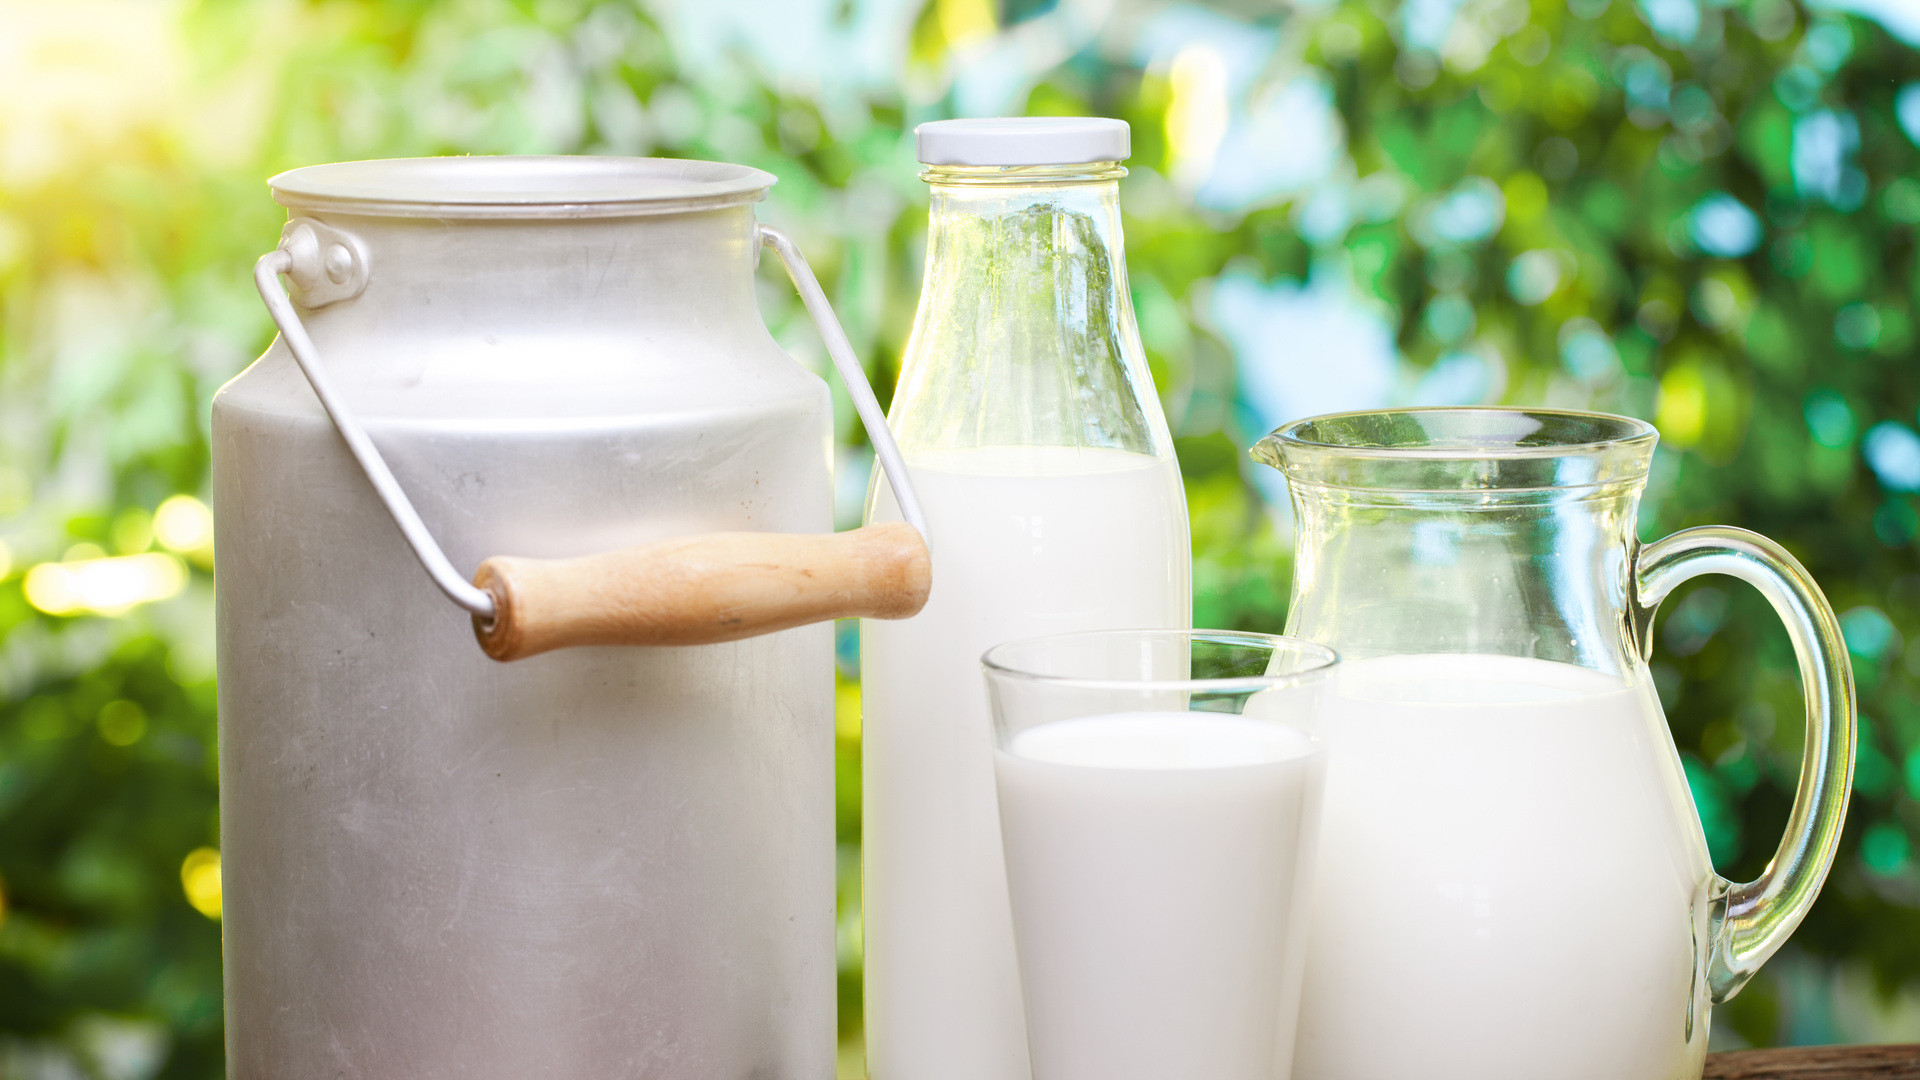 Doctors Warn Against Raw Milk for Kids, Pregnant Women recommend